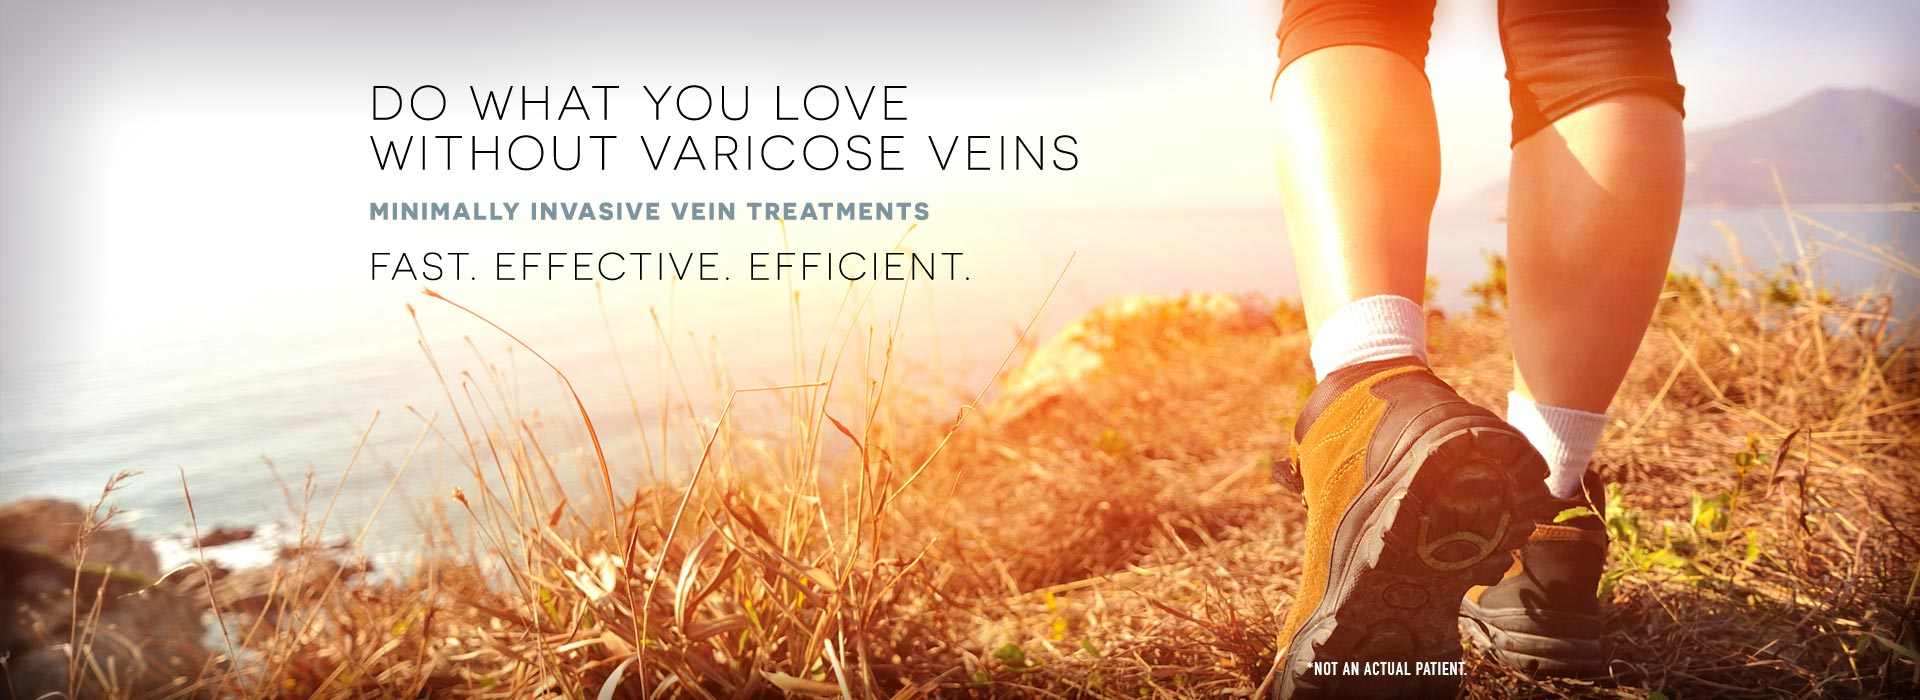 Minimally invasive varicose vein treatments